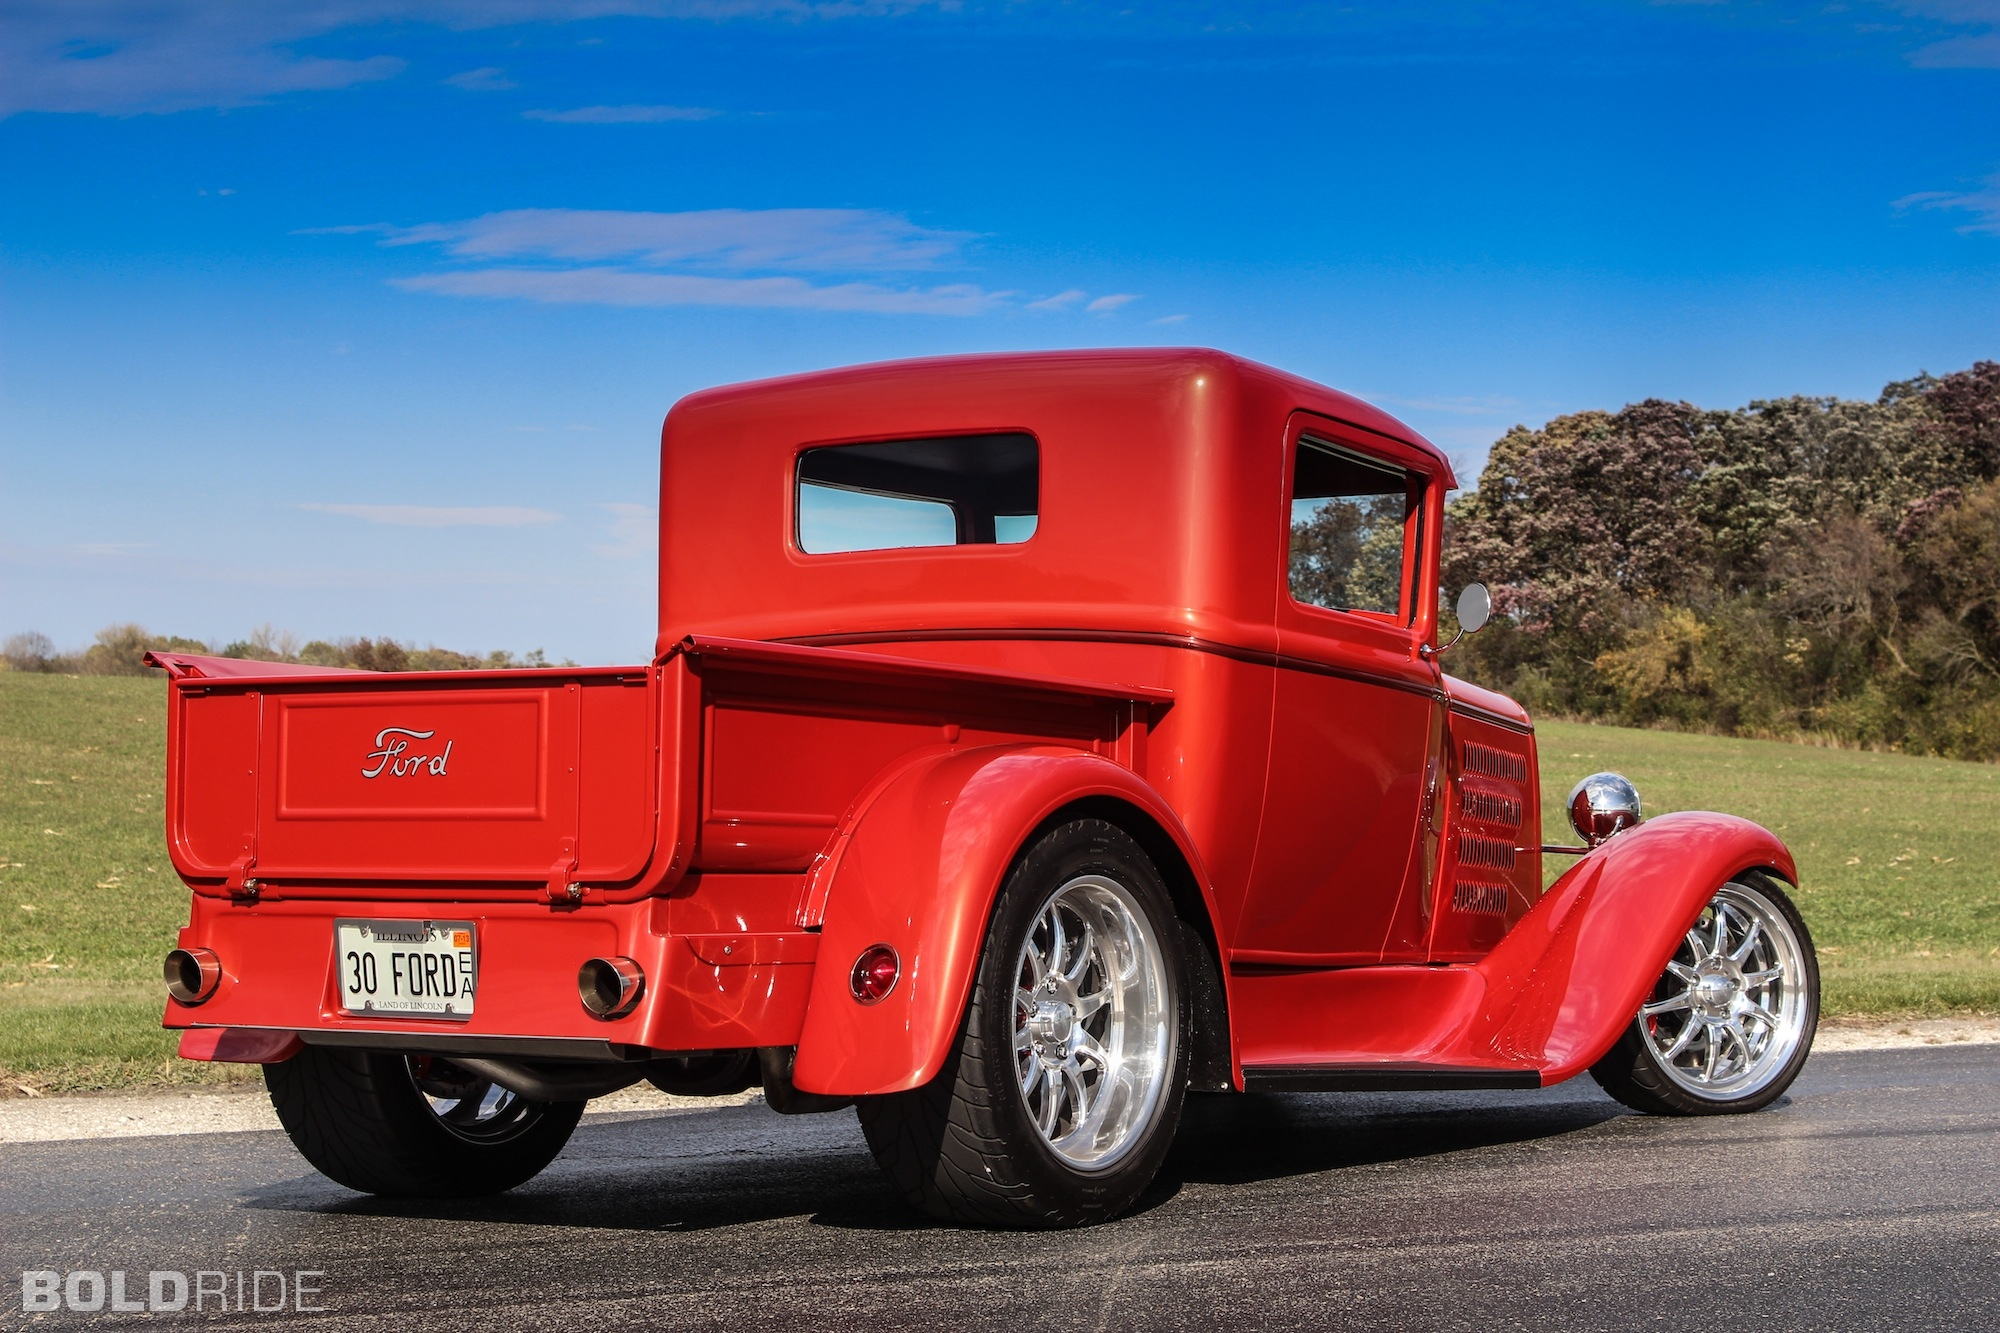 1930 Pickup Truck >> 1930 Ford Model-A Pickup model custom hot rod rods retro truck trucks q wallpaper | 2000x1333 ...